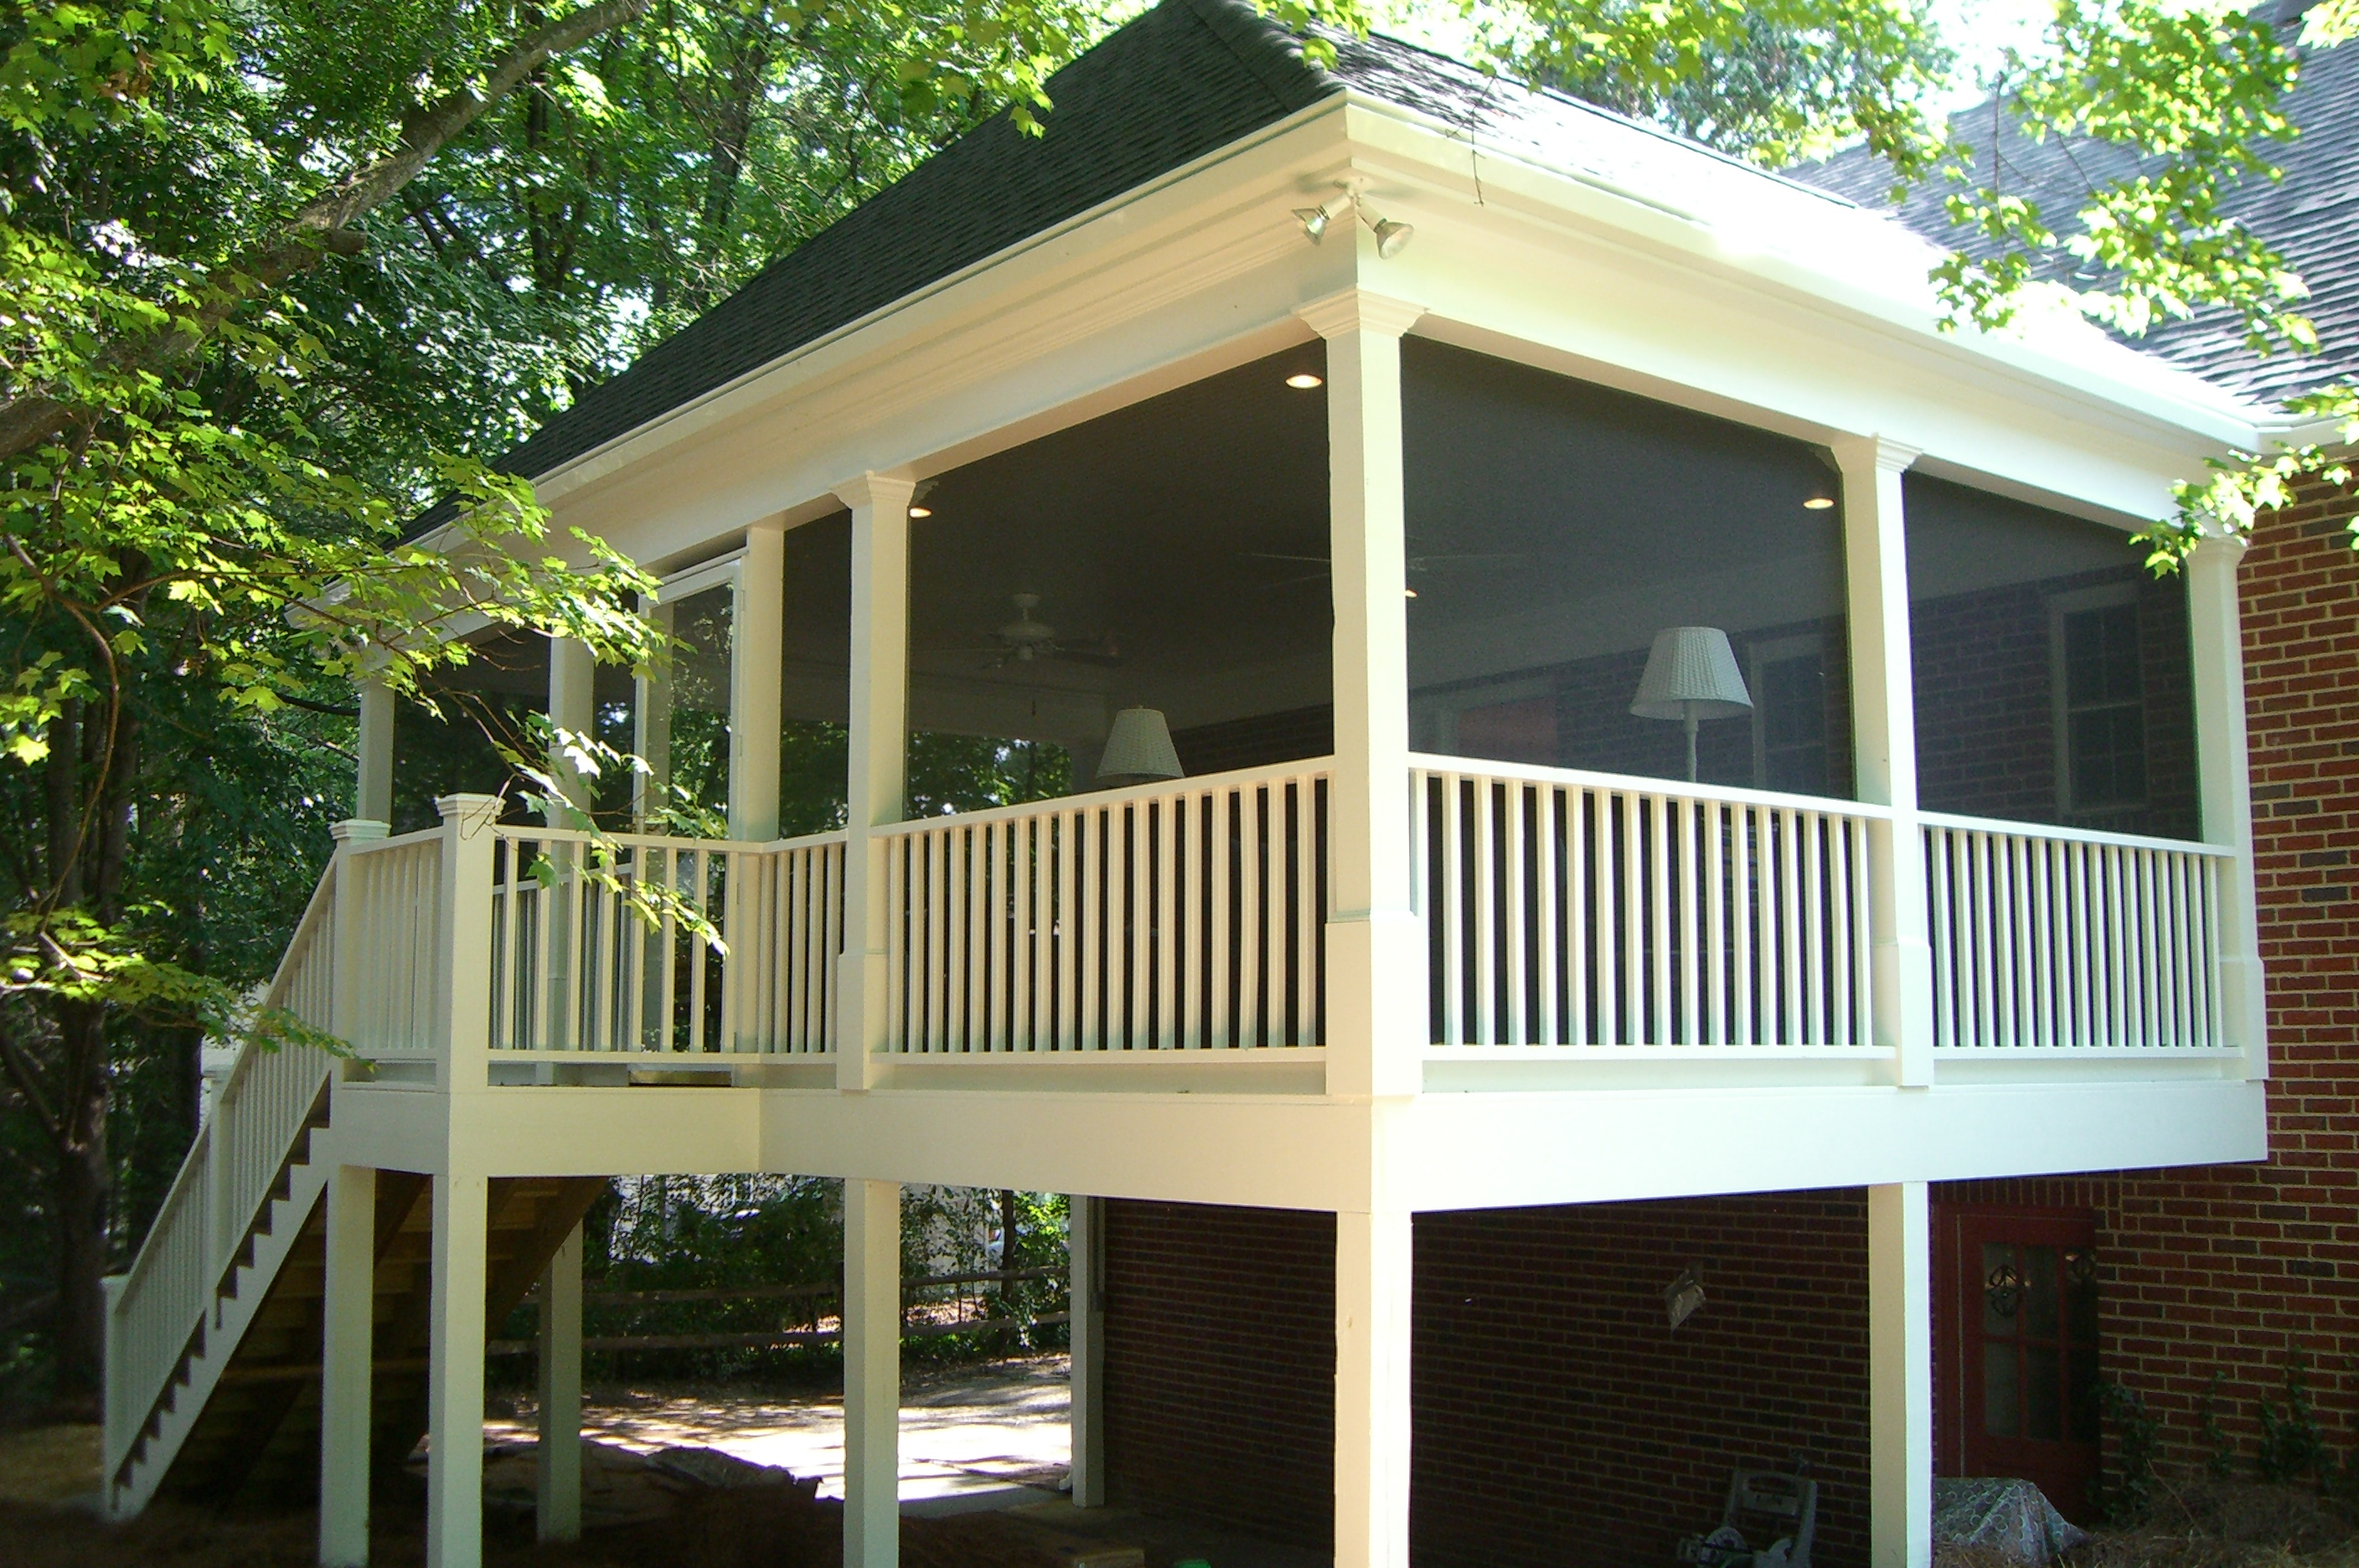 decks in louis to walls screened archadeck porches screen by safety rails st floors a porch how elevated with doors windows